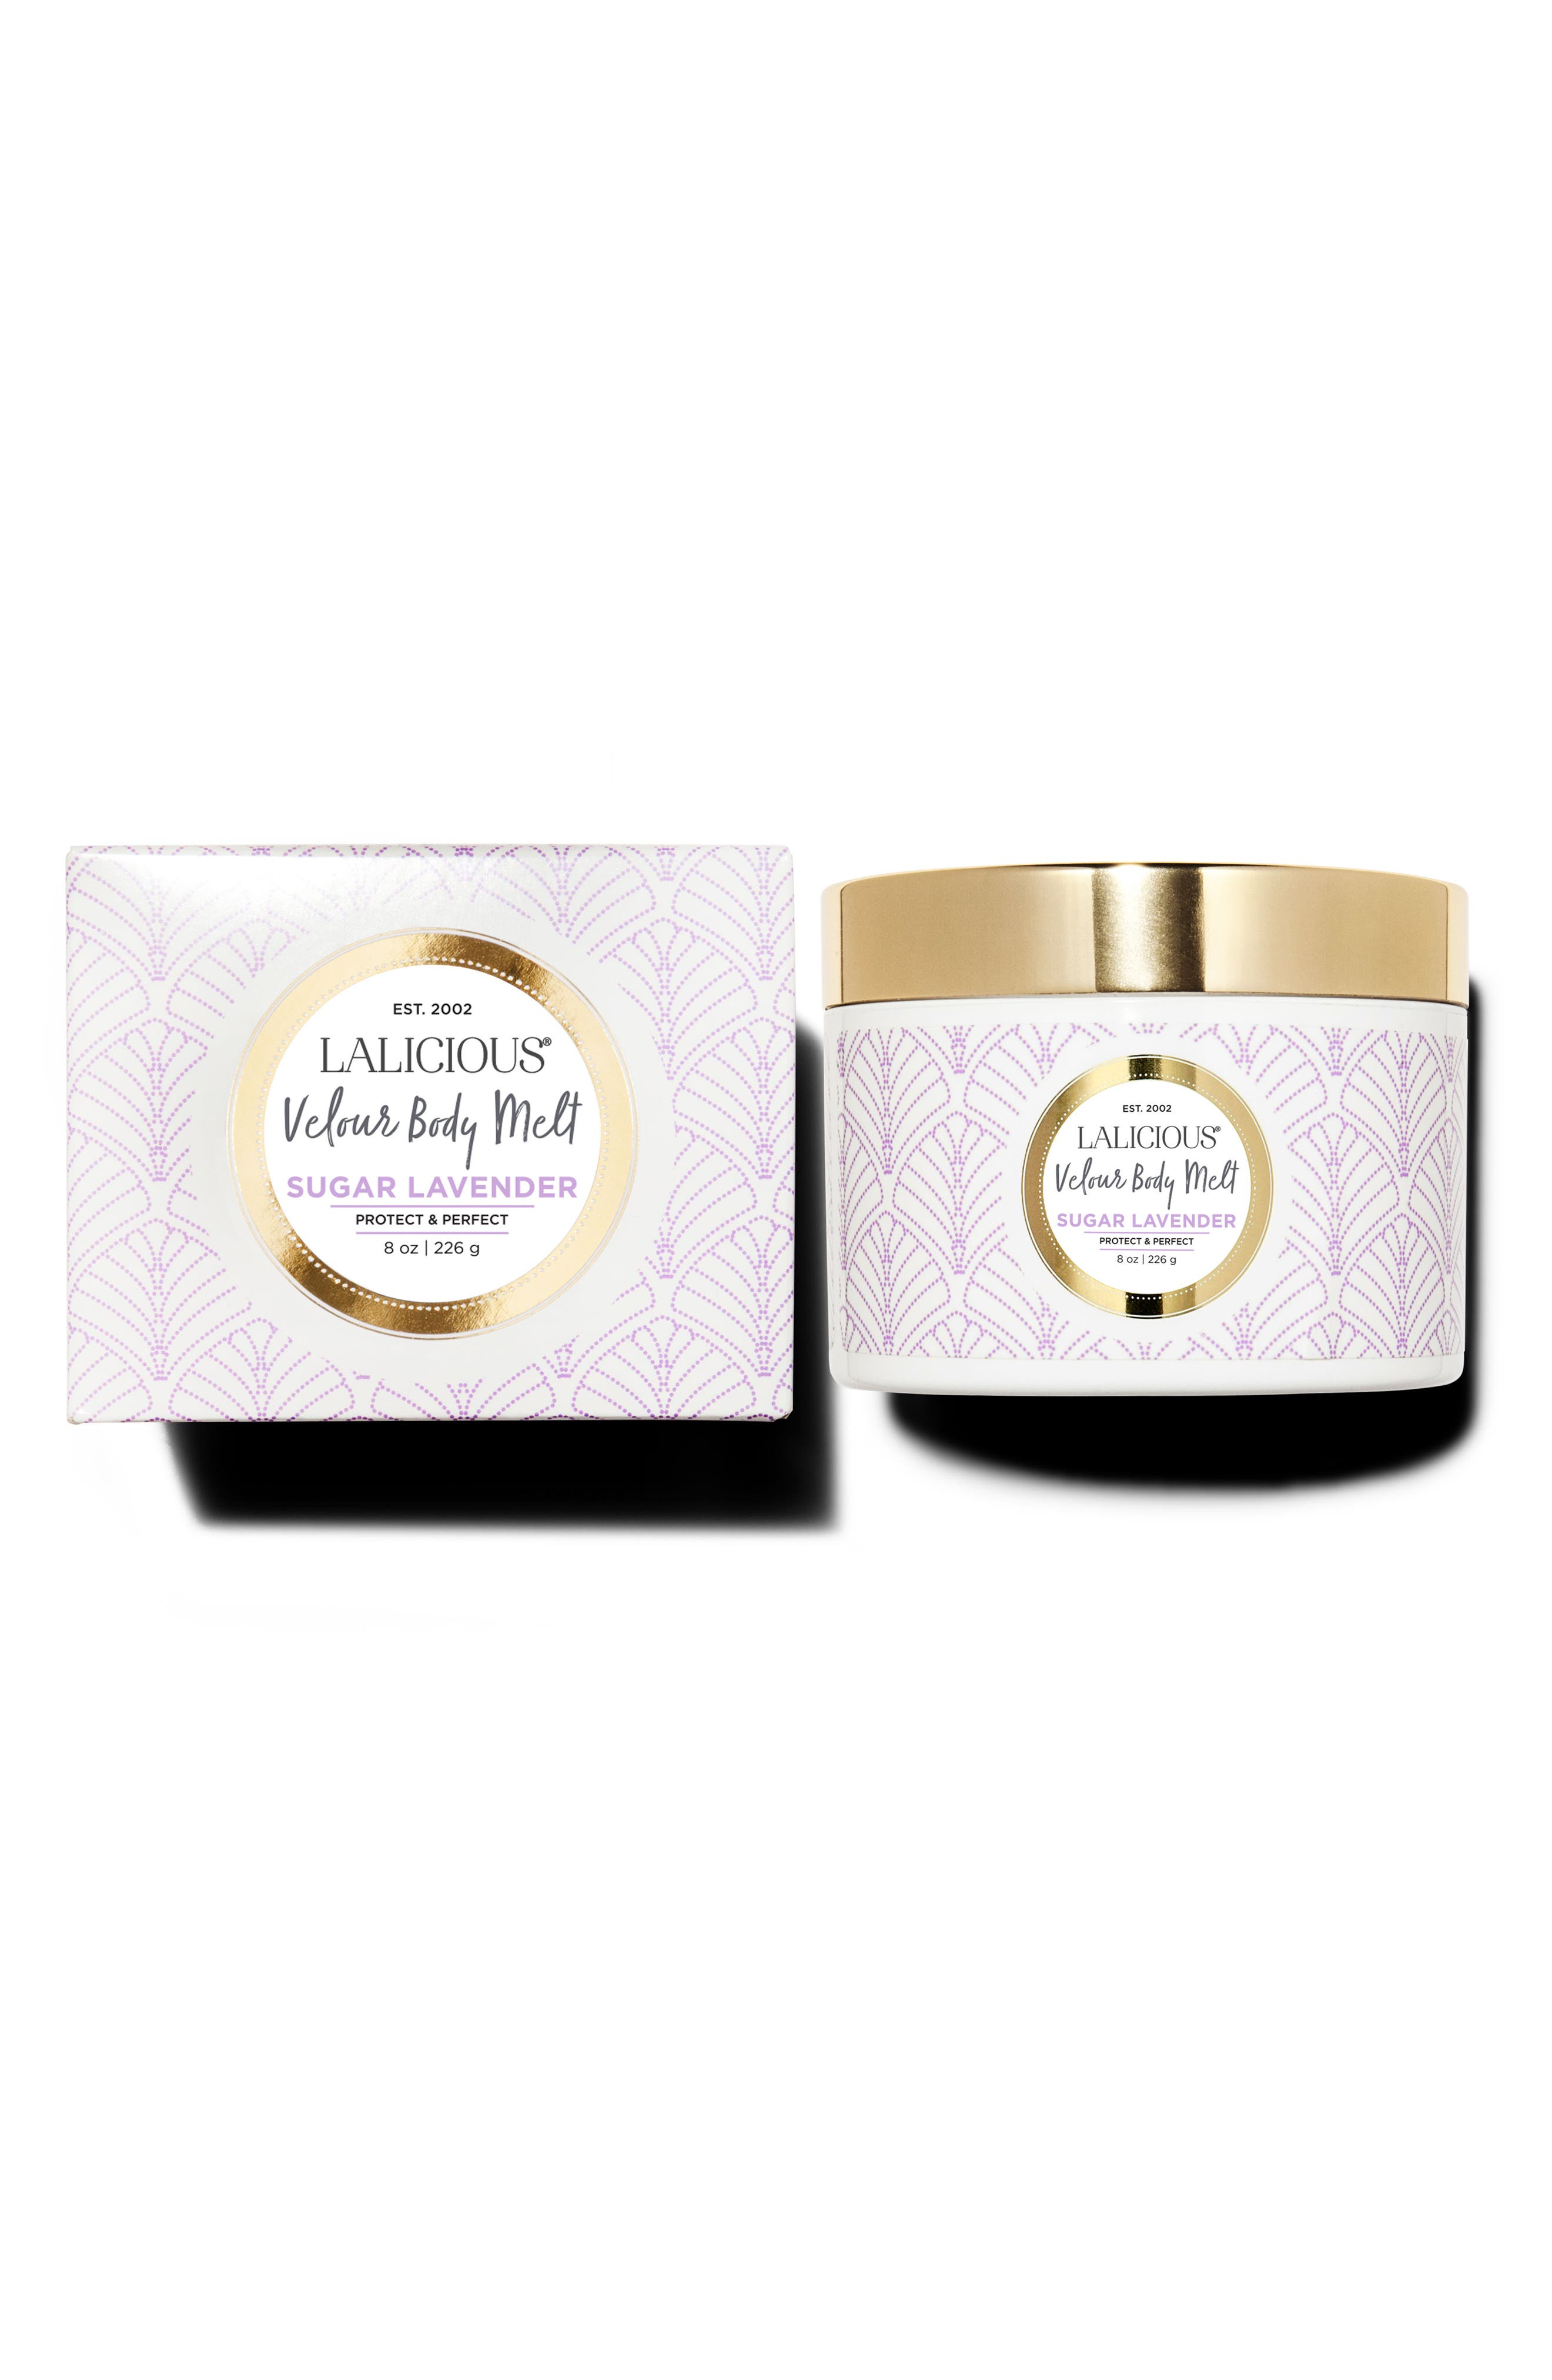 lalicious bath and body products nordstrom